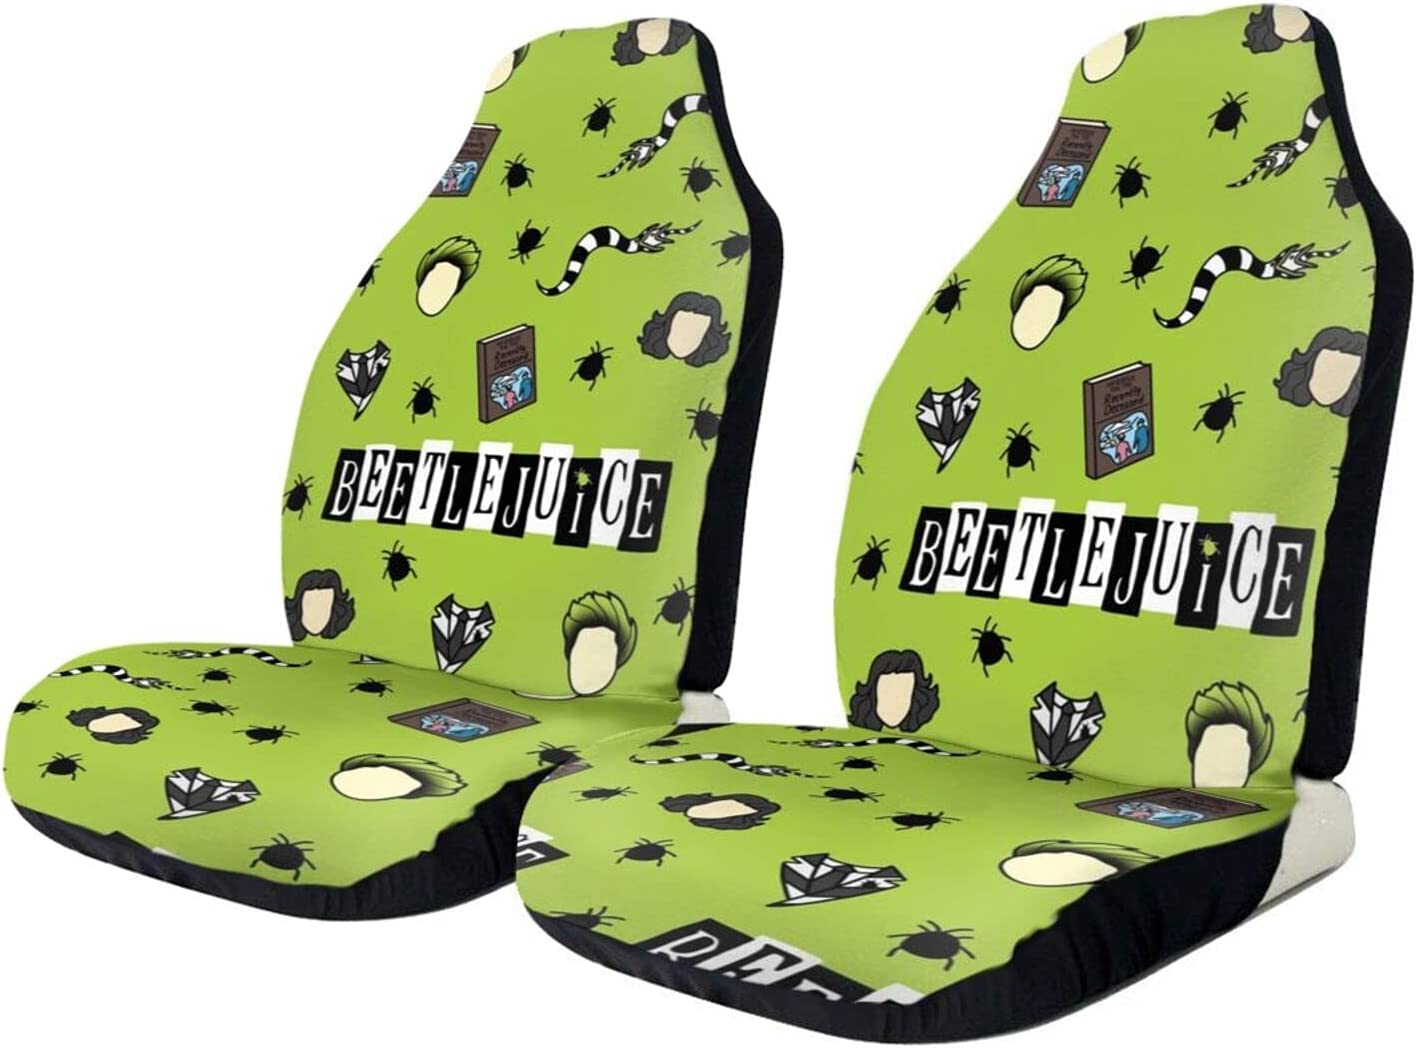 Beetlejuice Car Seat Covers Interior Accessories Max 41% OFF Pad Mat Gifts Cushion